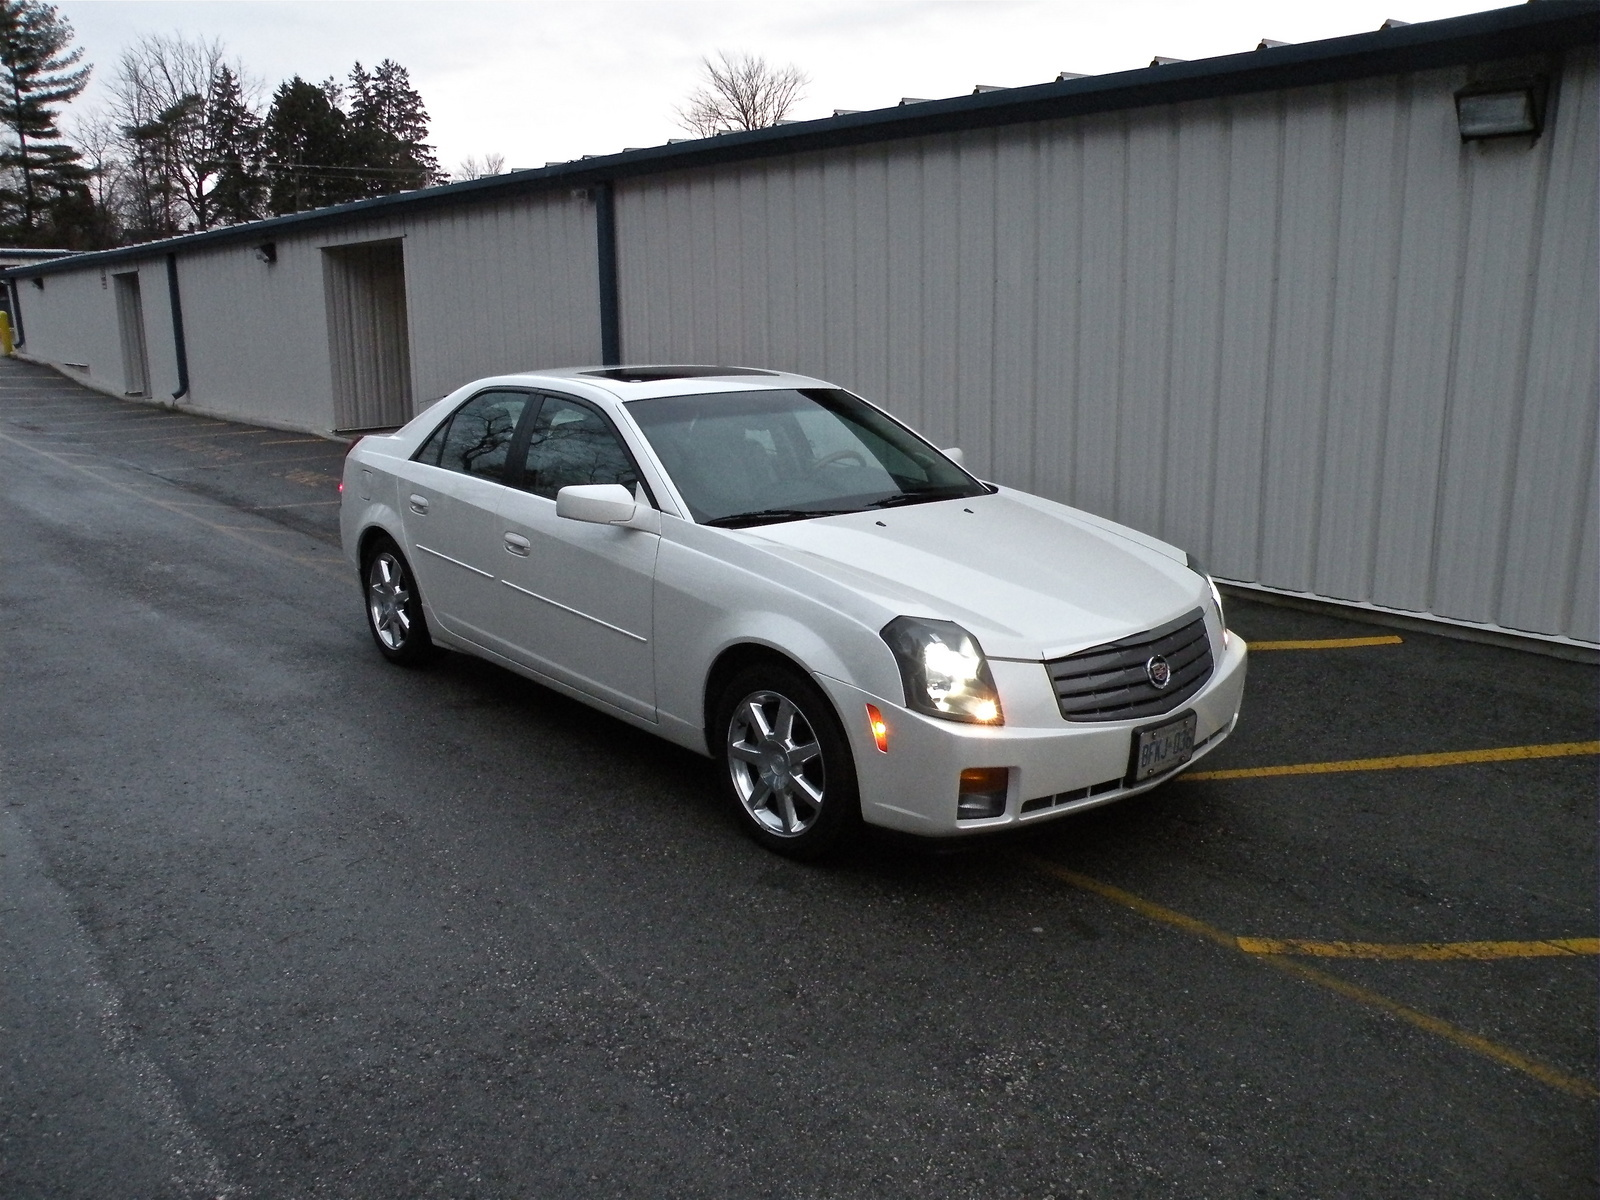 Cadillac Cts Questions How Do I Post My Car For Sale If I Am